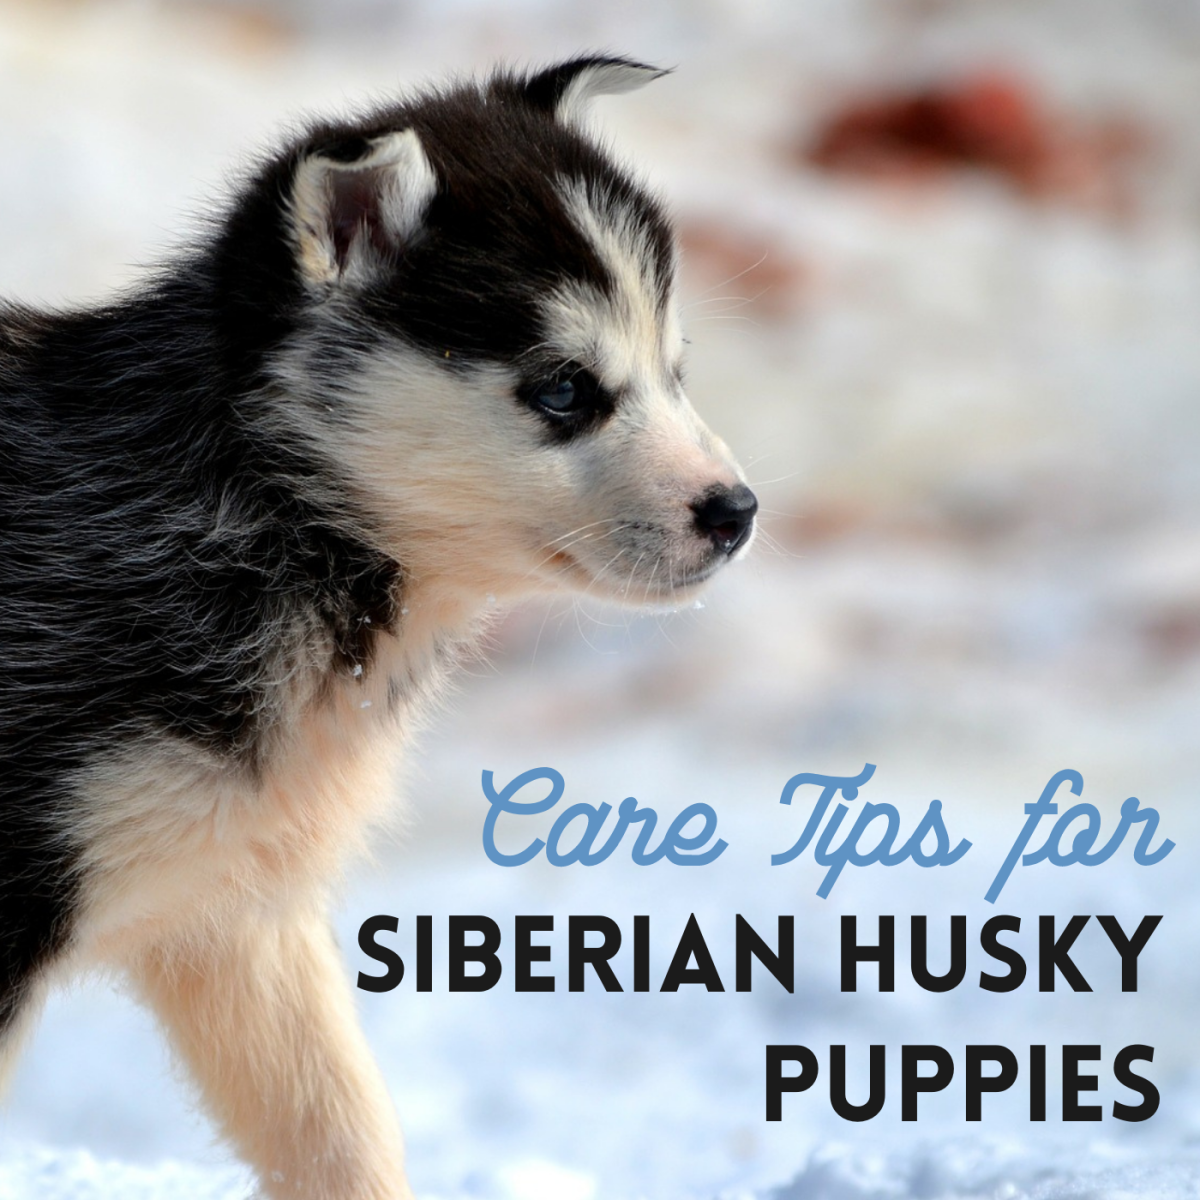 Get advice on training and caring for your new husky puppy.